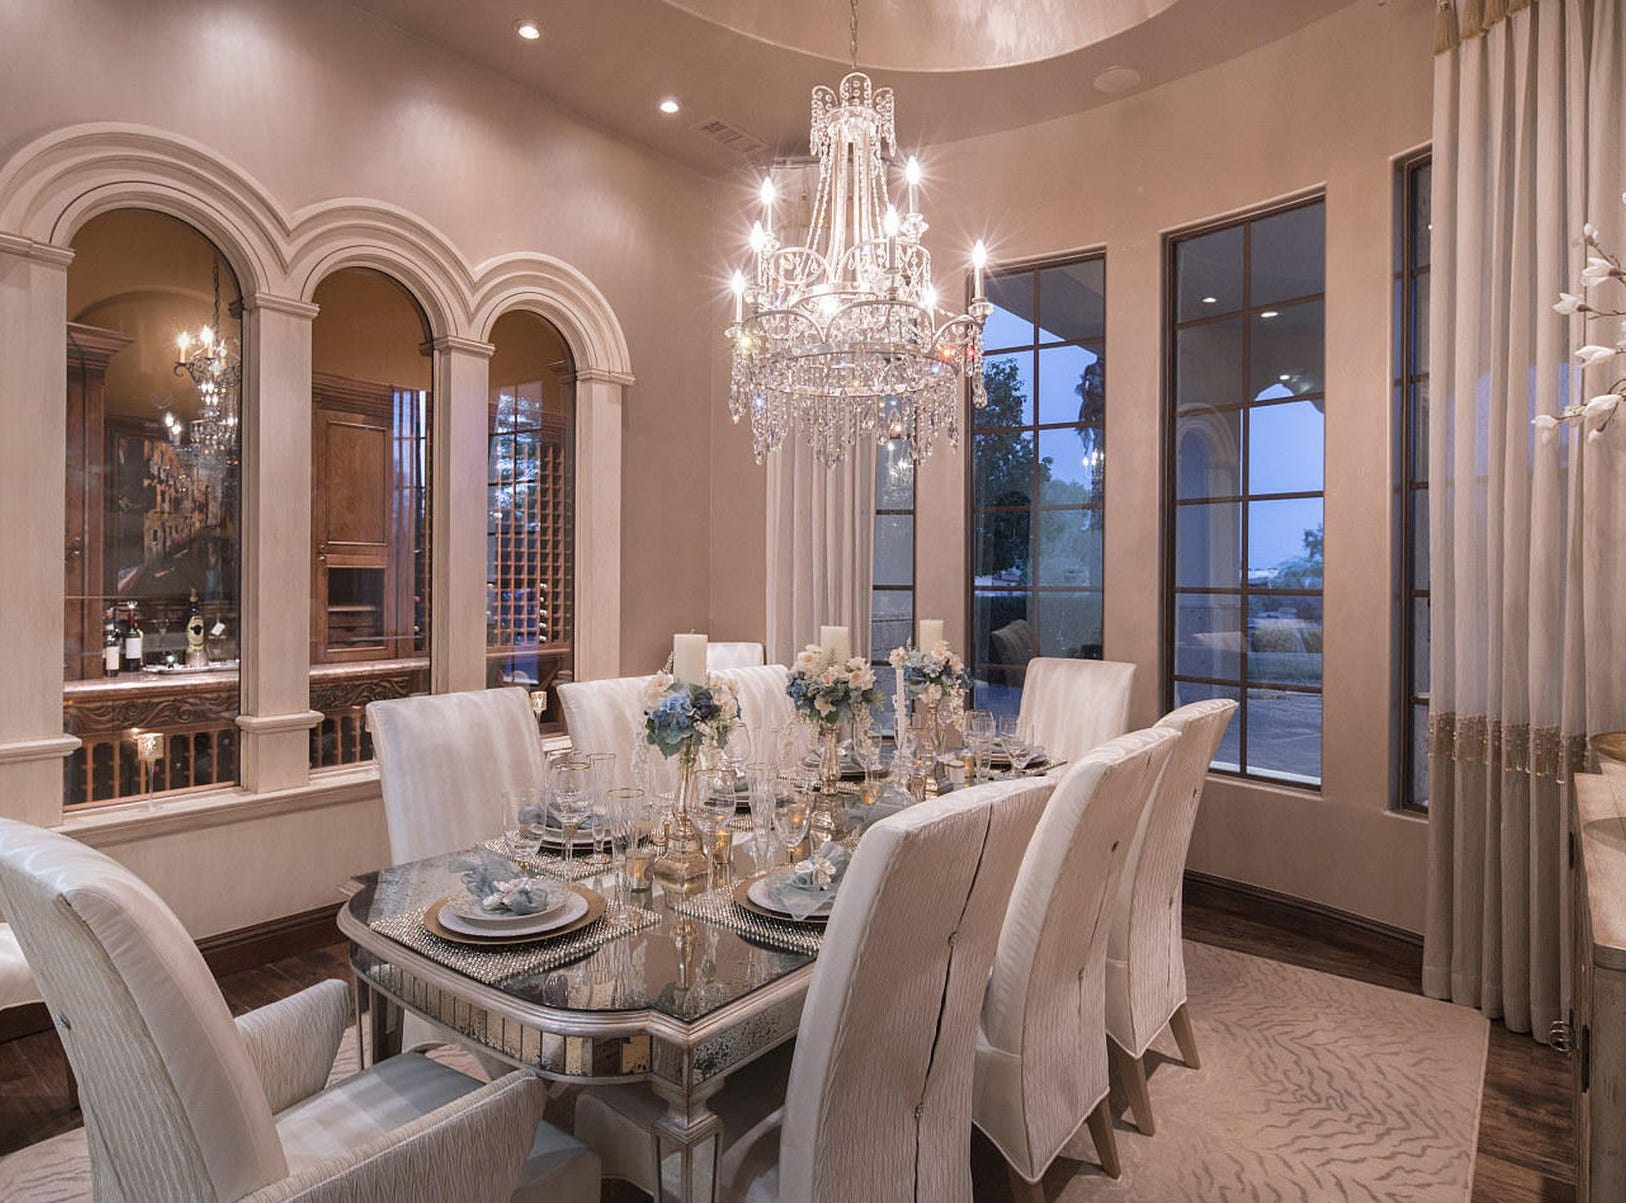 Stephen M. Horvath purchased a mansion in Scottsdale's Cactus Acrescommunity. The 8,036-square-foot house has six bedrooms, eightbathrooms and sits on an 1.1-acre lot.